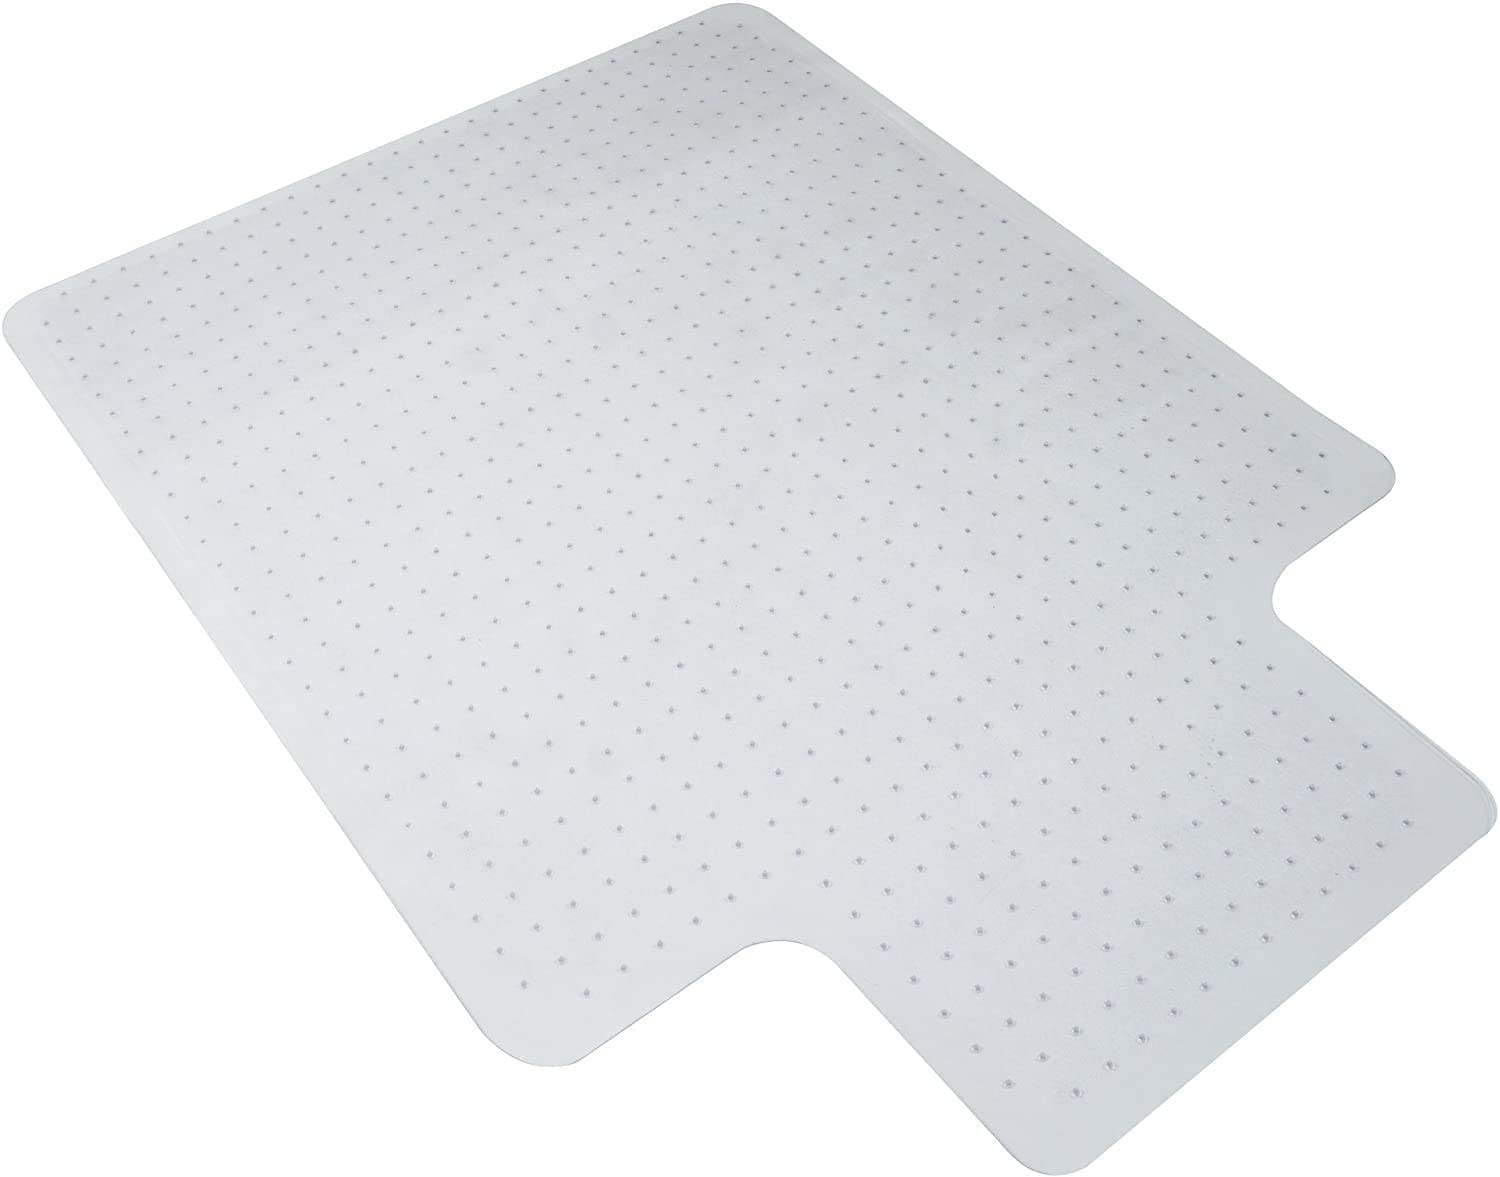 "PVC Office Chair Mat with Lip, Home-use Protective Mat, Beveled Edge, Easy Glide Mats for Carpeted Floors, Transparent (Studded (47.24"" x 35.43"" x 0.08""))"